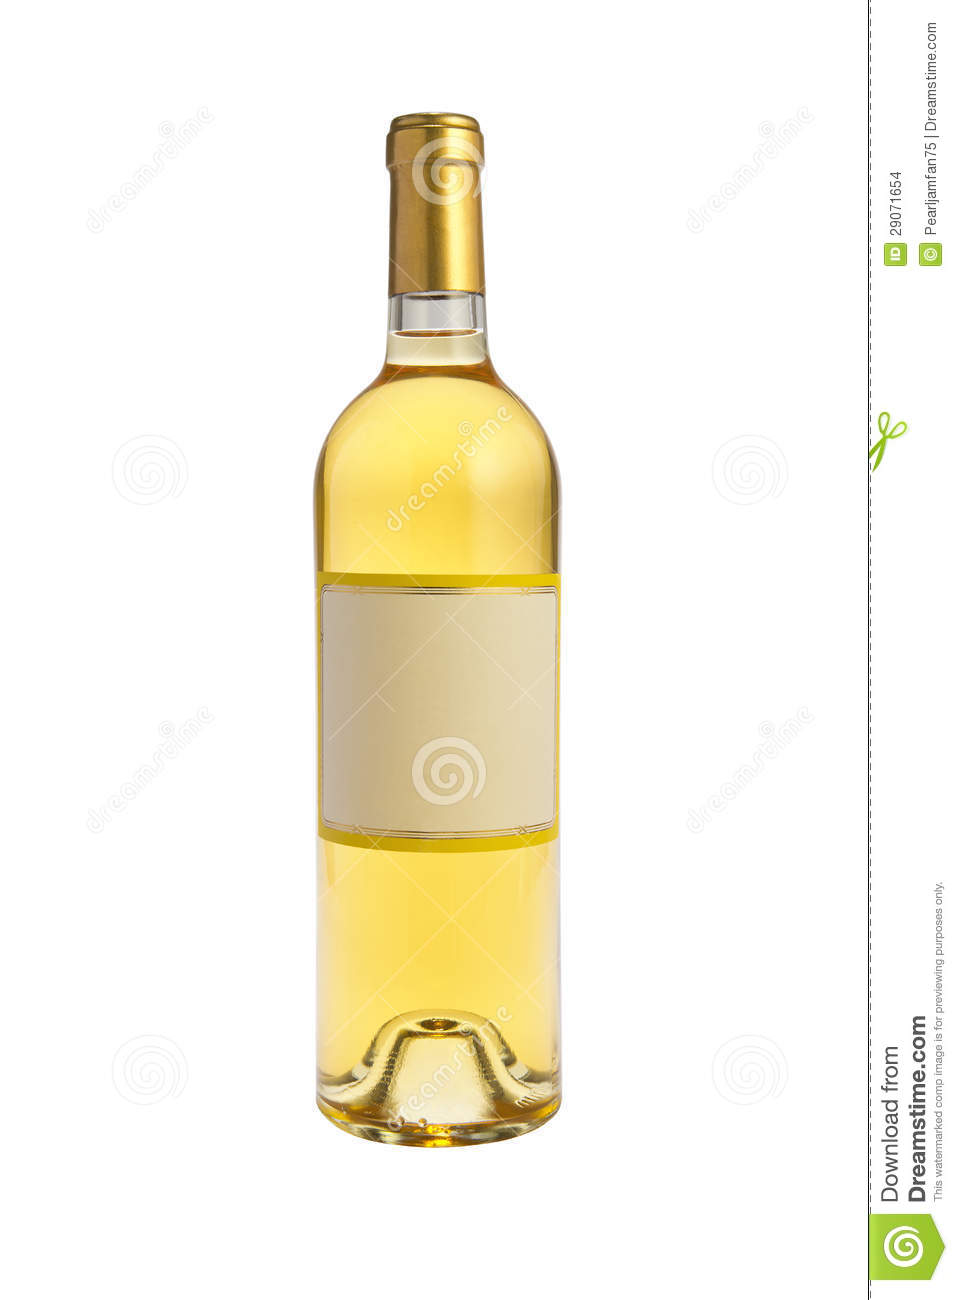 White Wine Bottle Stock Images - Image: 29071654